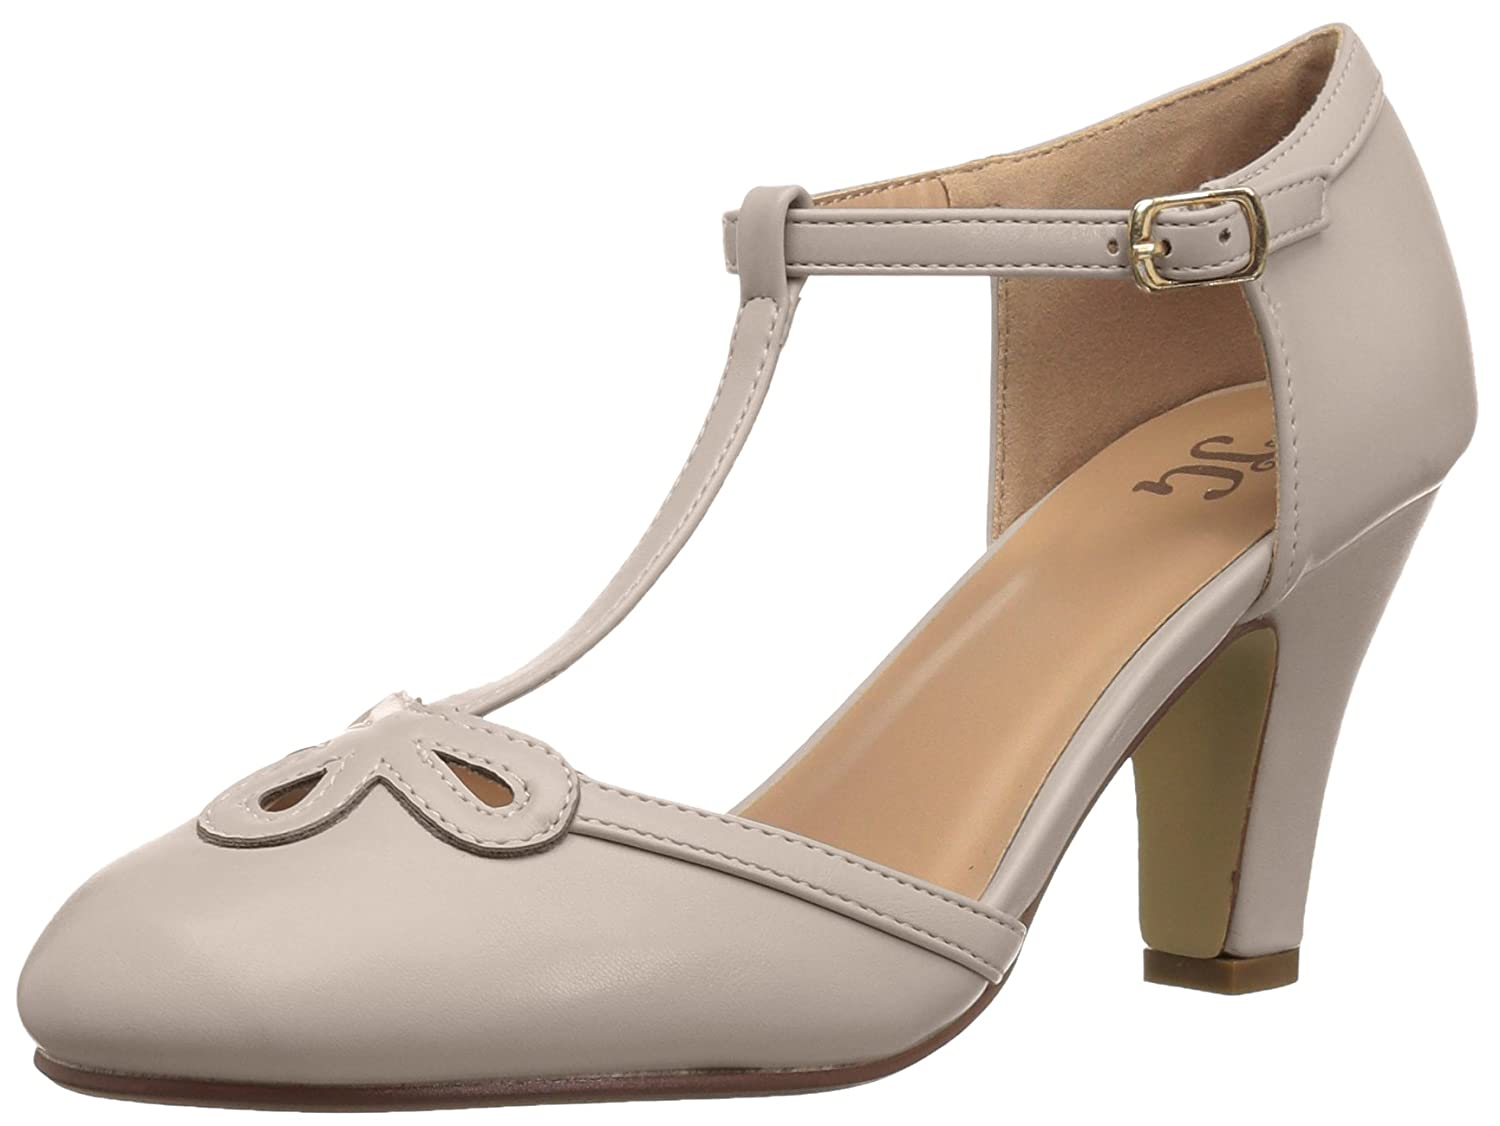 Vintage Style Shoes, Vintage Inspired Shoes Brinley Co Womens Patsie Pump $36.44 AT vintagedancer.com